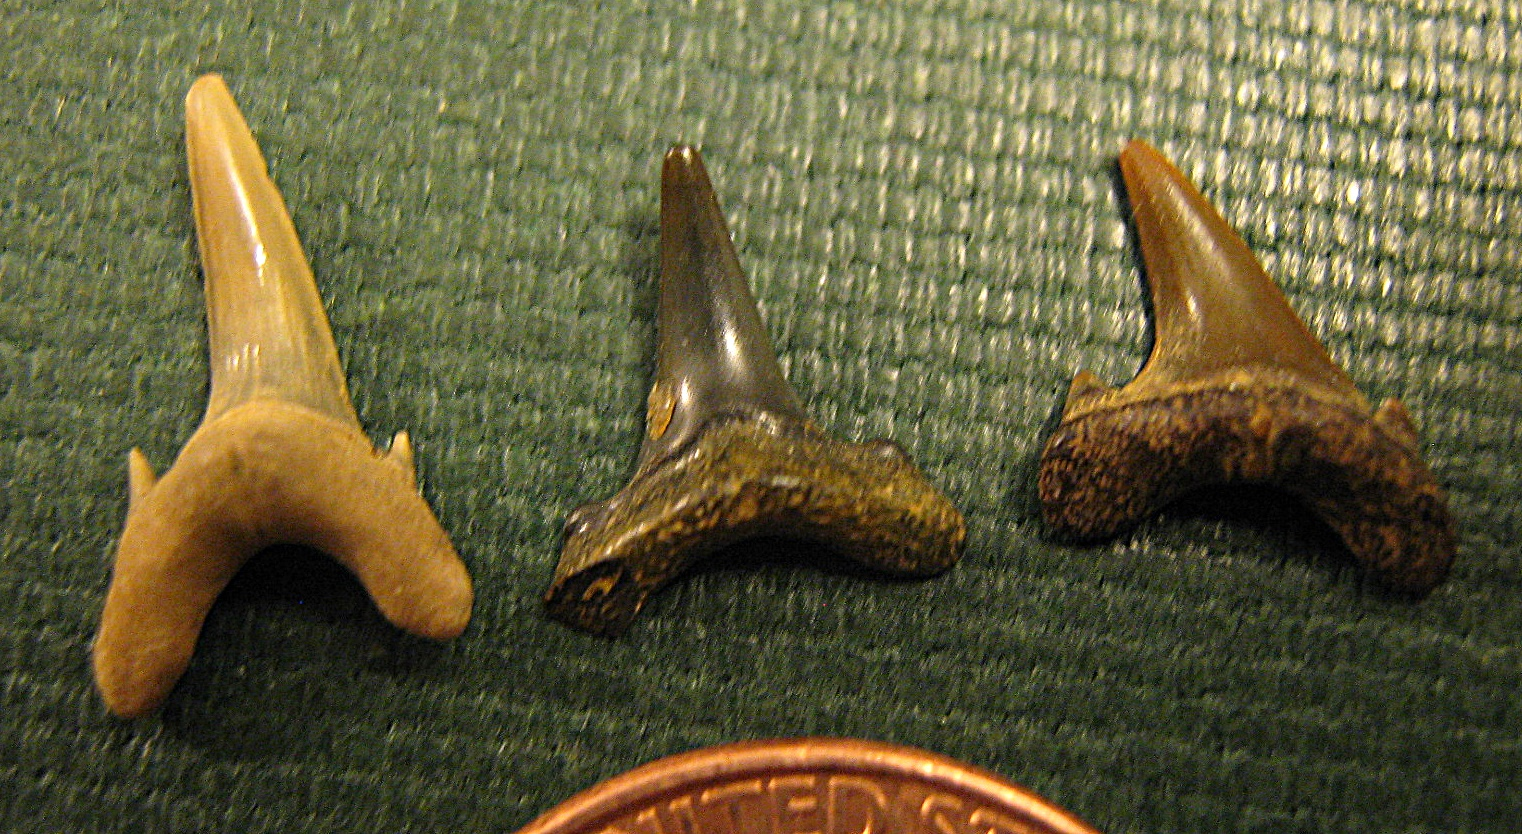 Sand Tiger Shark teeth from New jersey